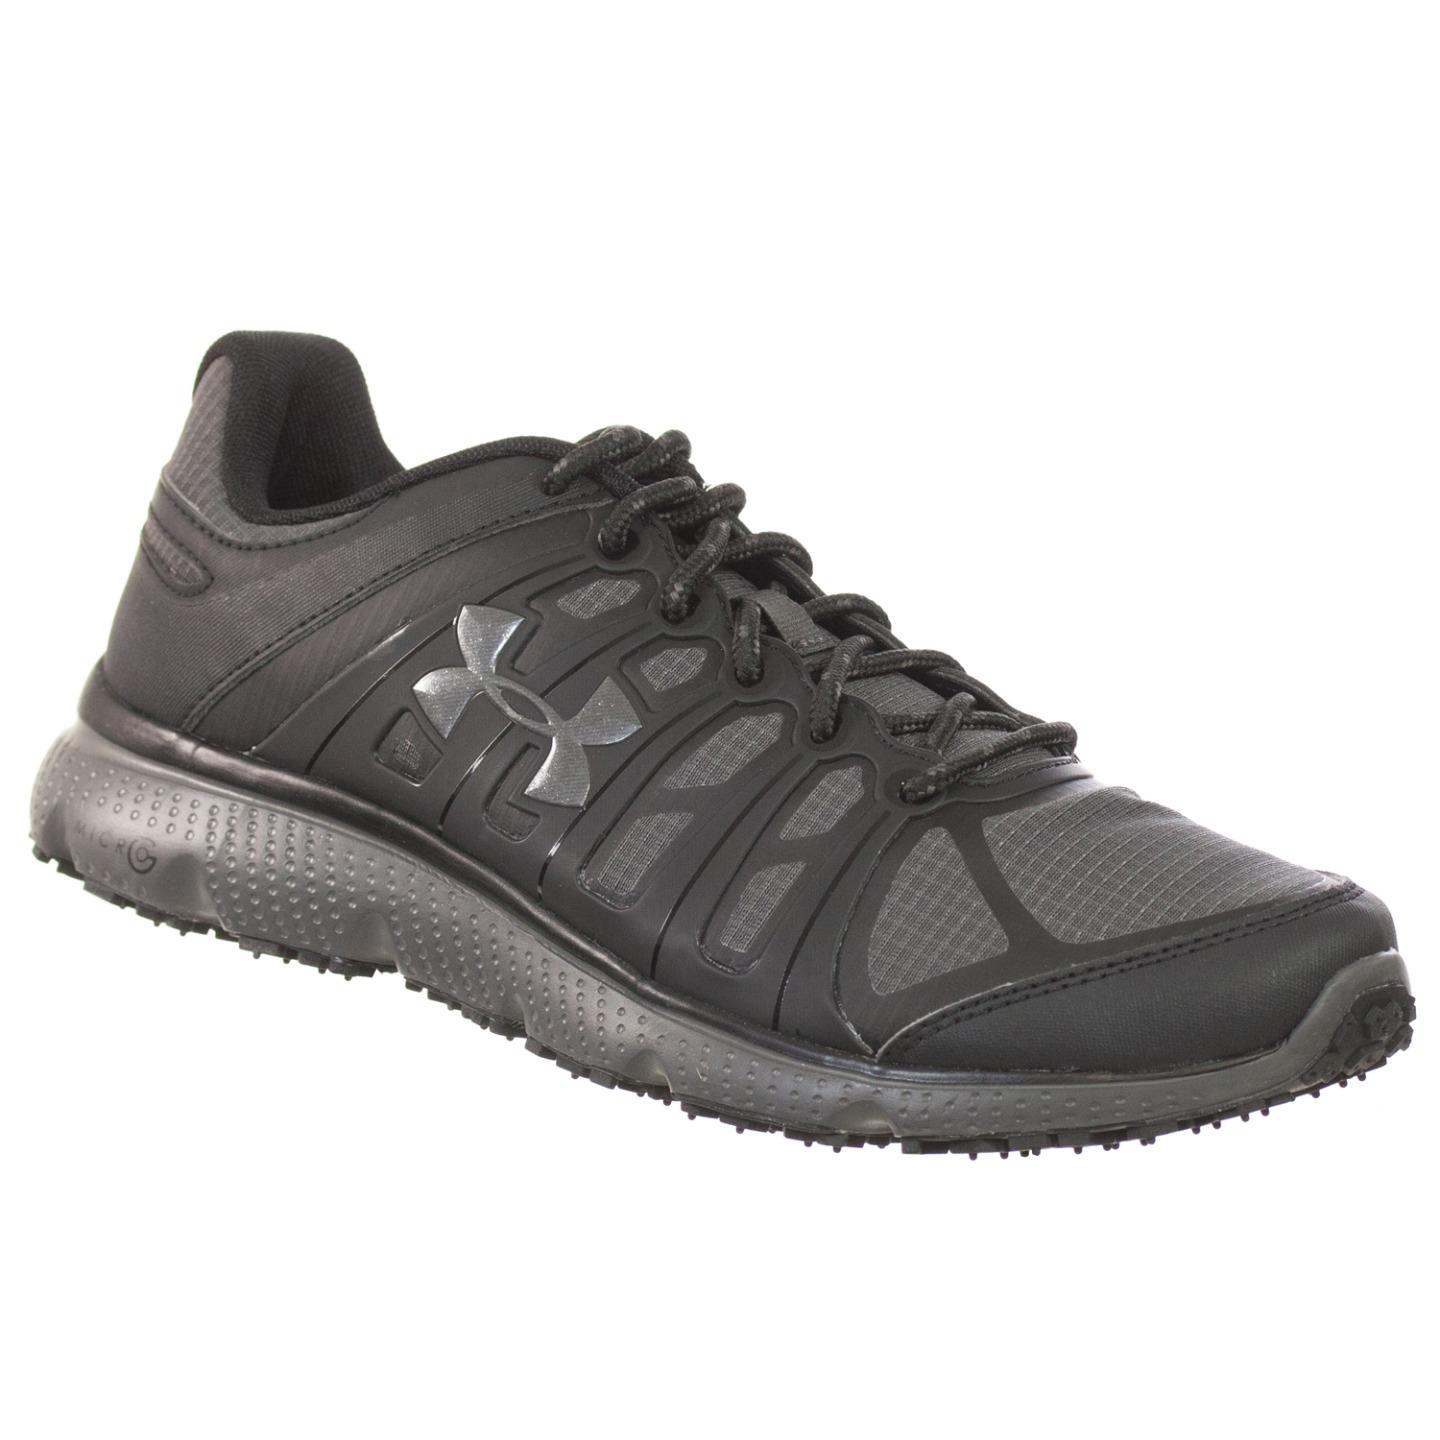 Under Armour MENS ATHLETIC SHOES MICRO G PULSE 2 GRIT BLA...